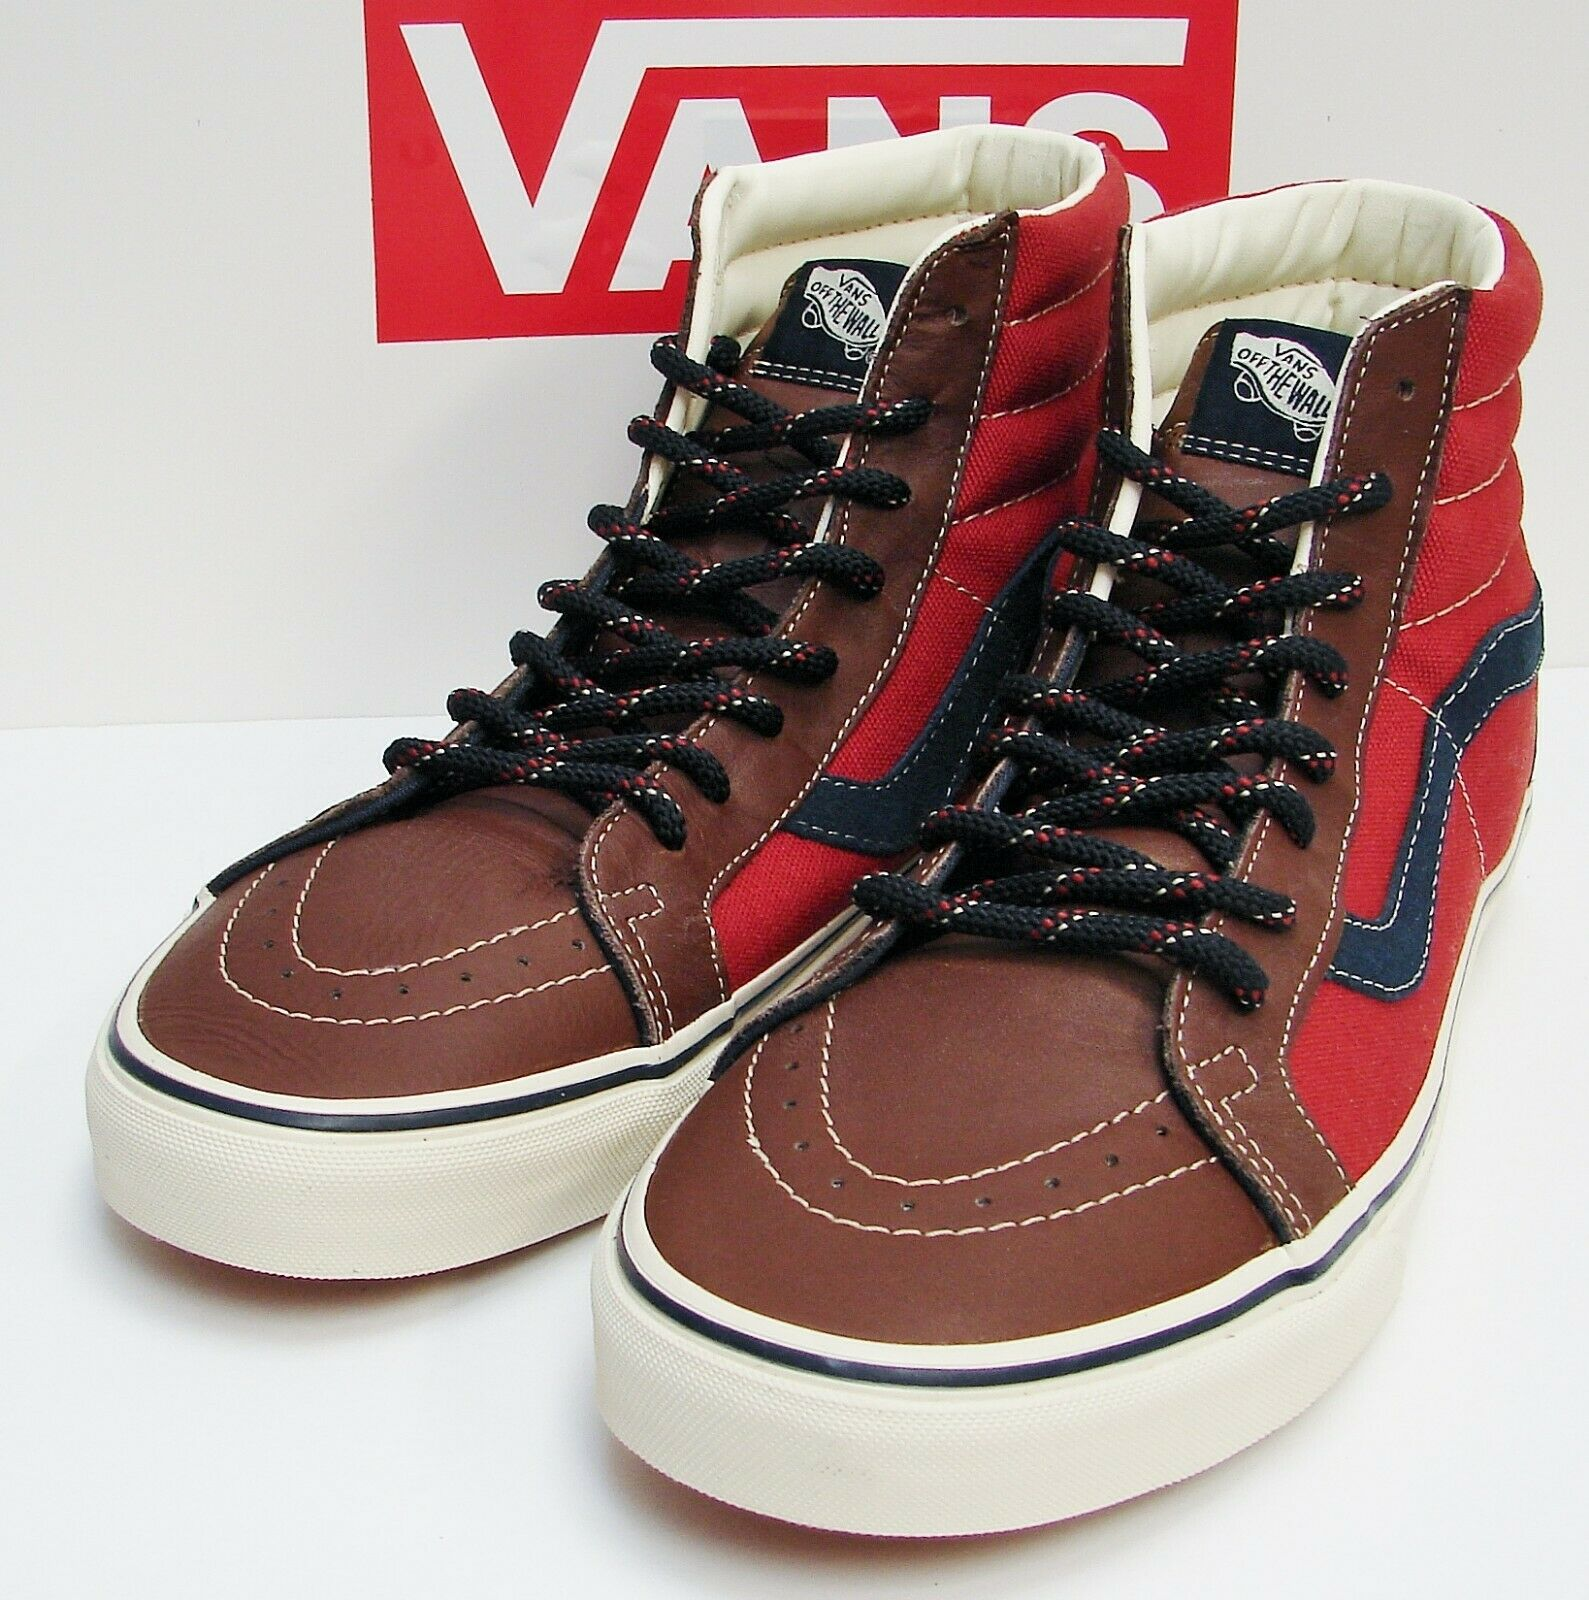 VANS Sk8-HI Reissue (Leather & 14 OZ) Cappuccino VN-0QG2B4A Men's size  11.5